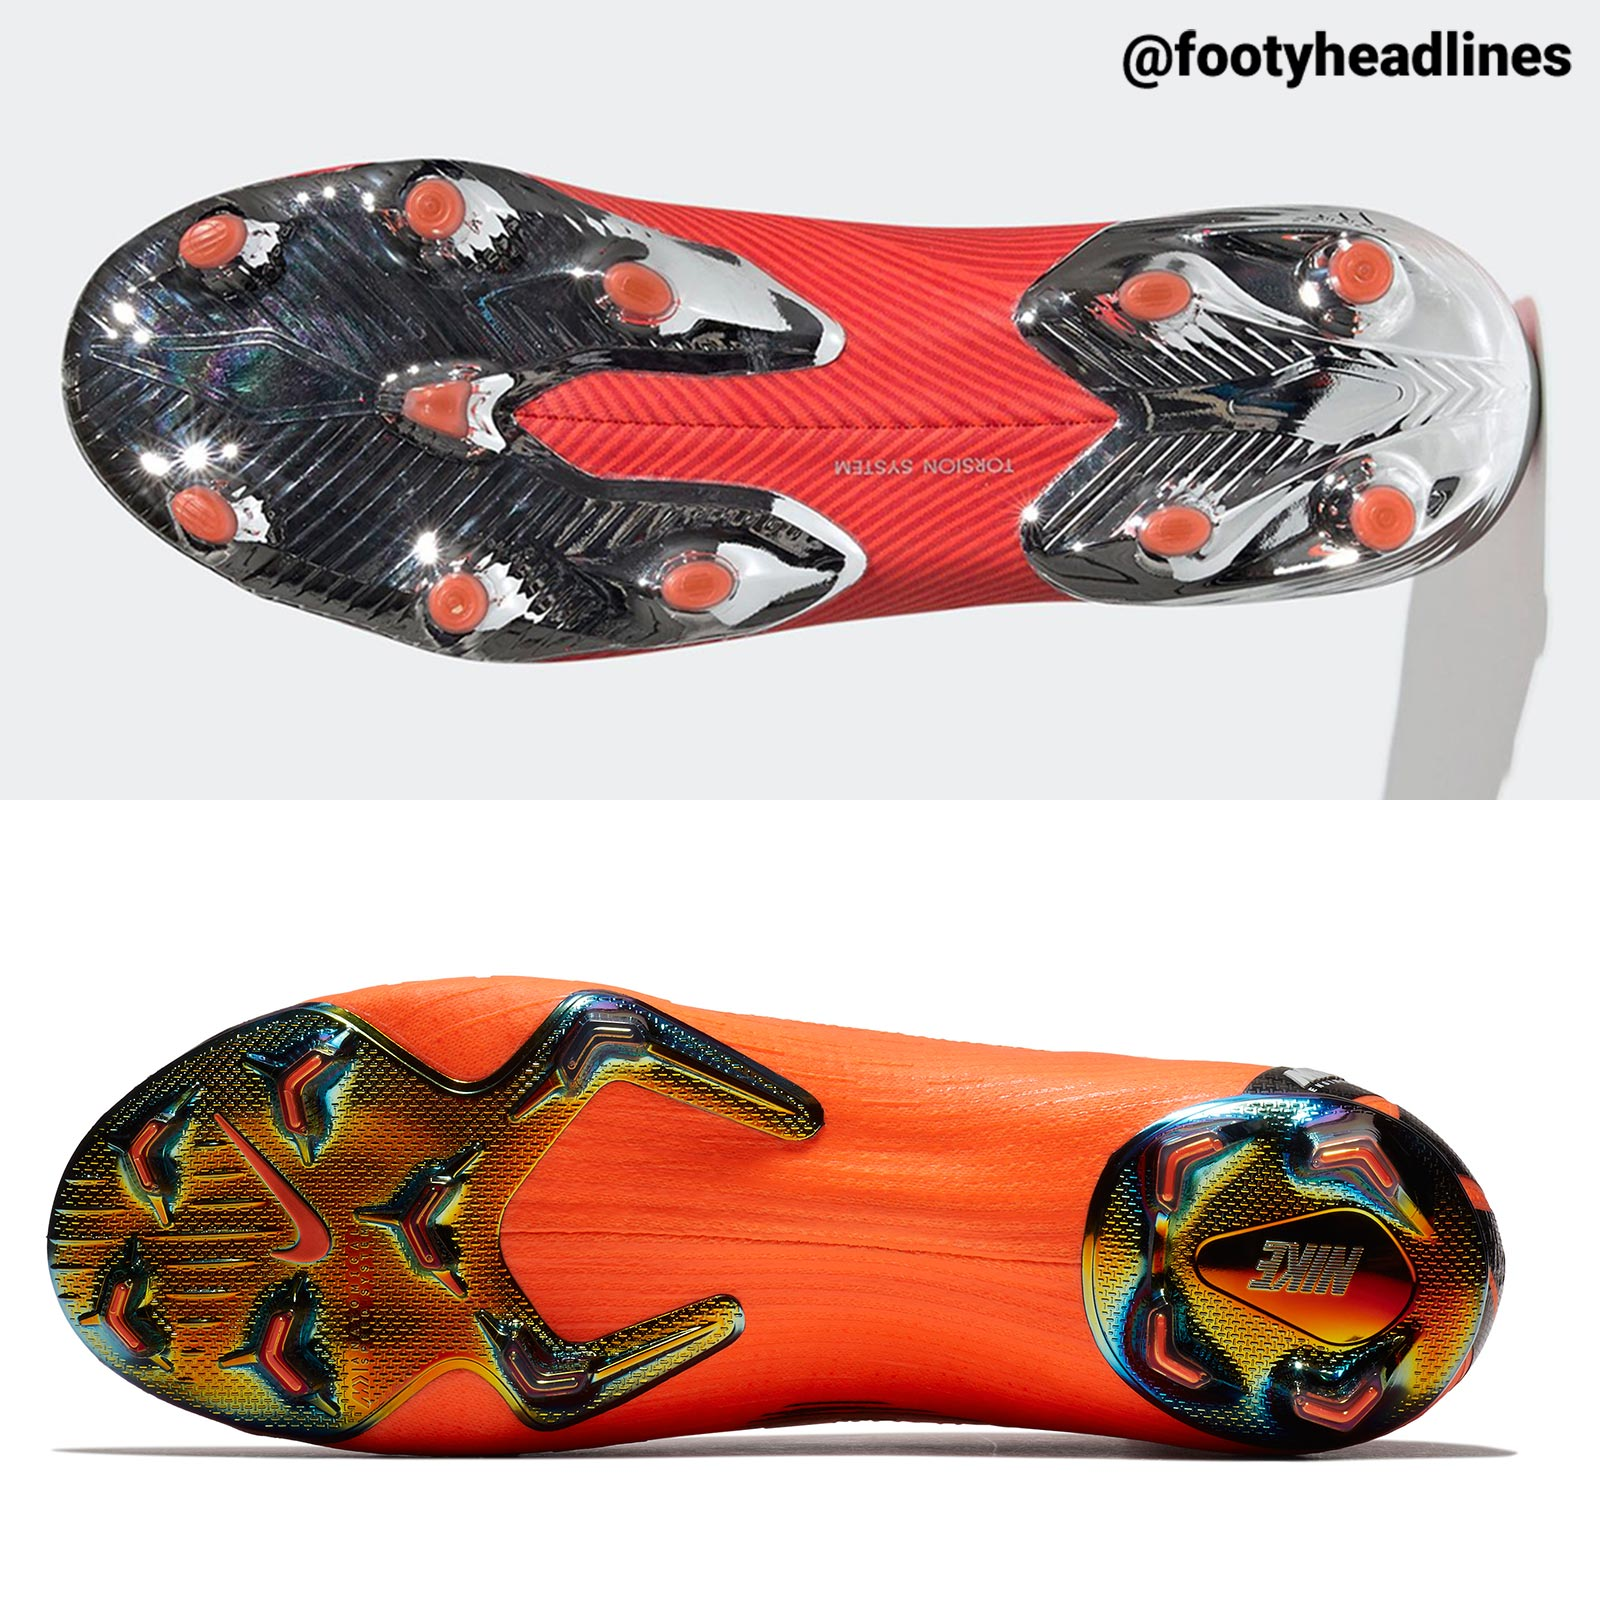 9912236f4 The Mercurial Superfly 360 and Mercurial Vapor 360 wrap the entire foot in Nike  Flyknit. The main feature of the Adidas Nemeziz 19+ is that the Adidas ...